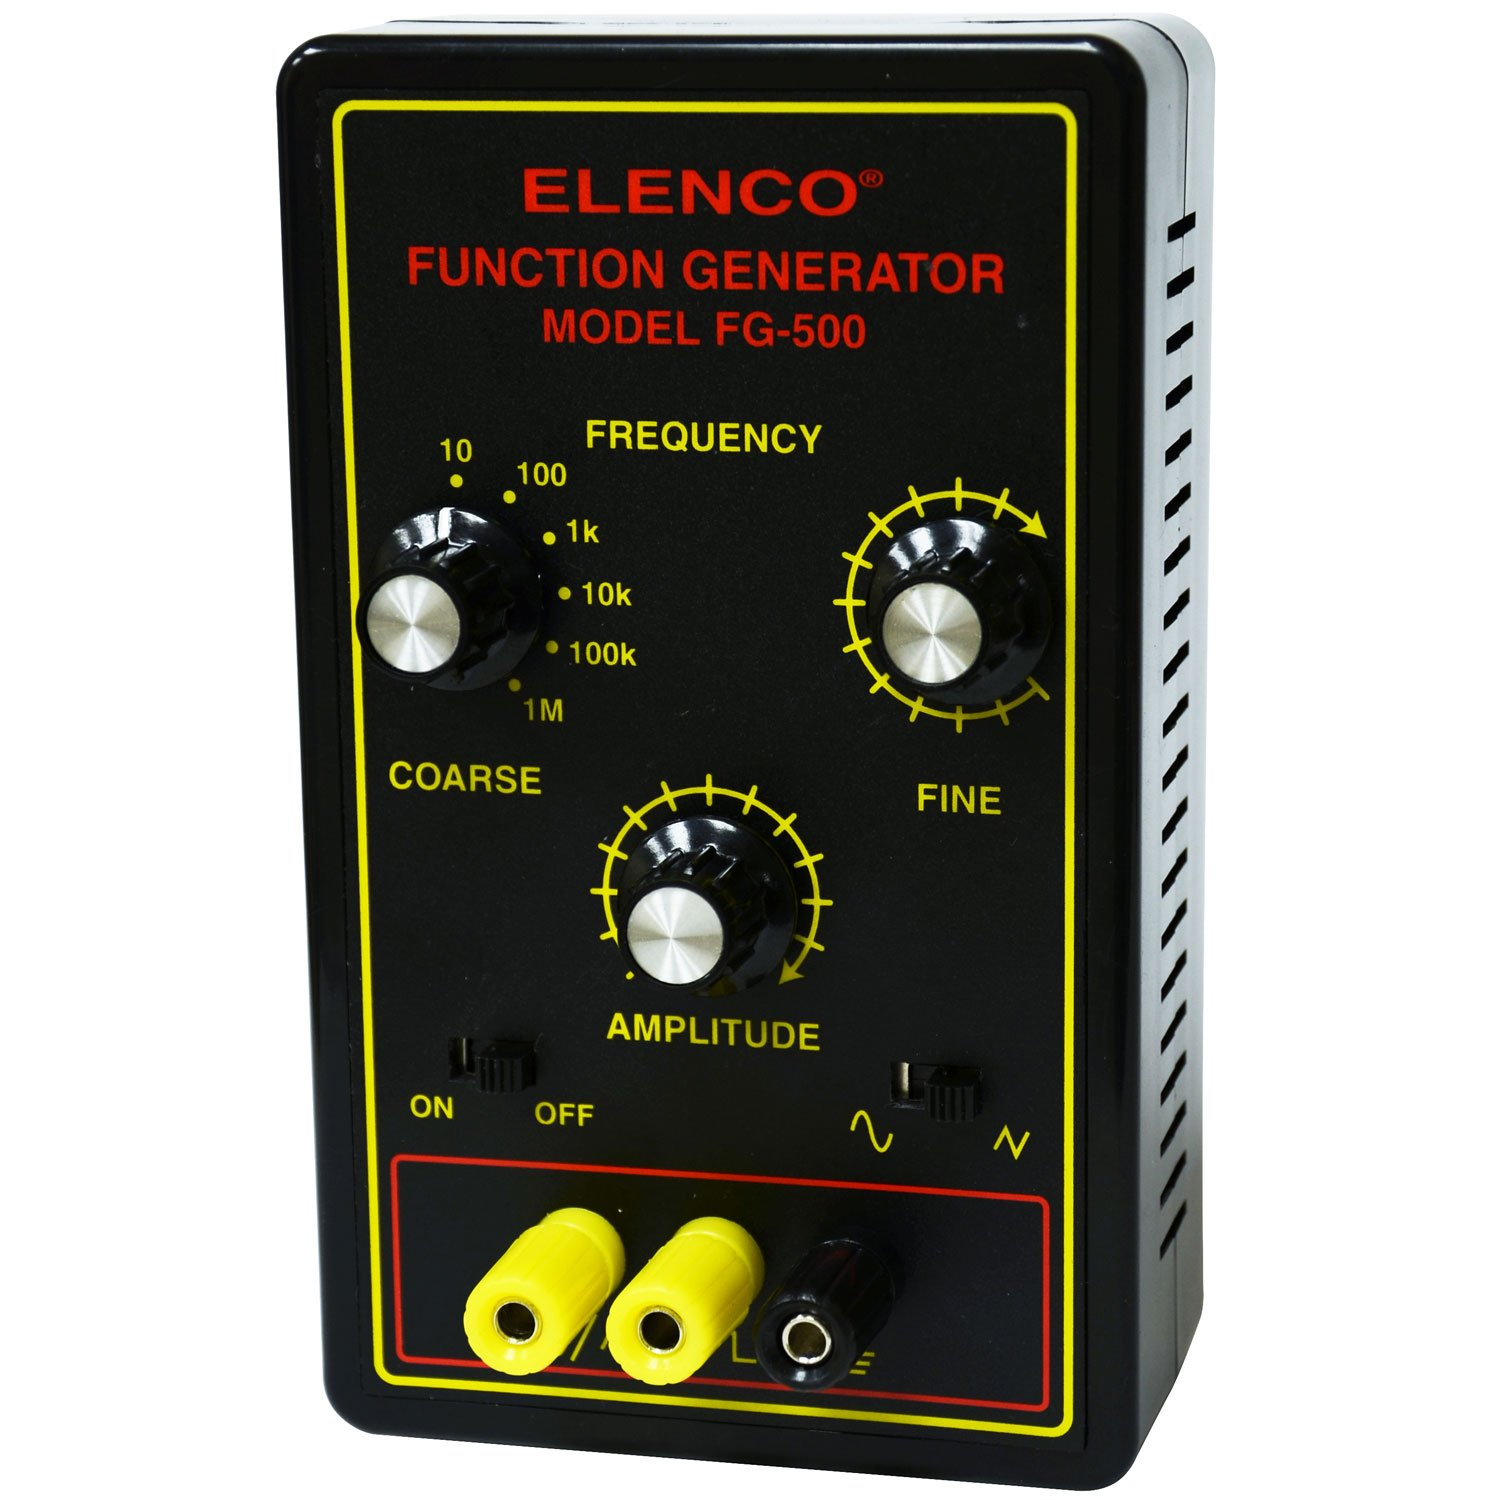 1mhz Function Generator Kit Electronics And Electricity Science Pulse Control Frequency By Digital Ic Kits Industrial Scientific